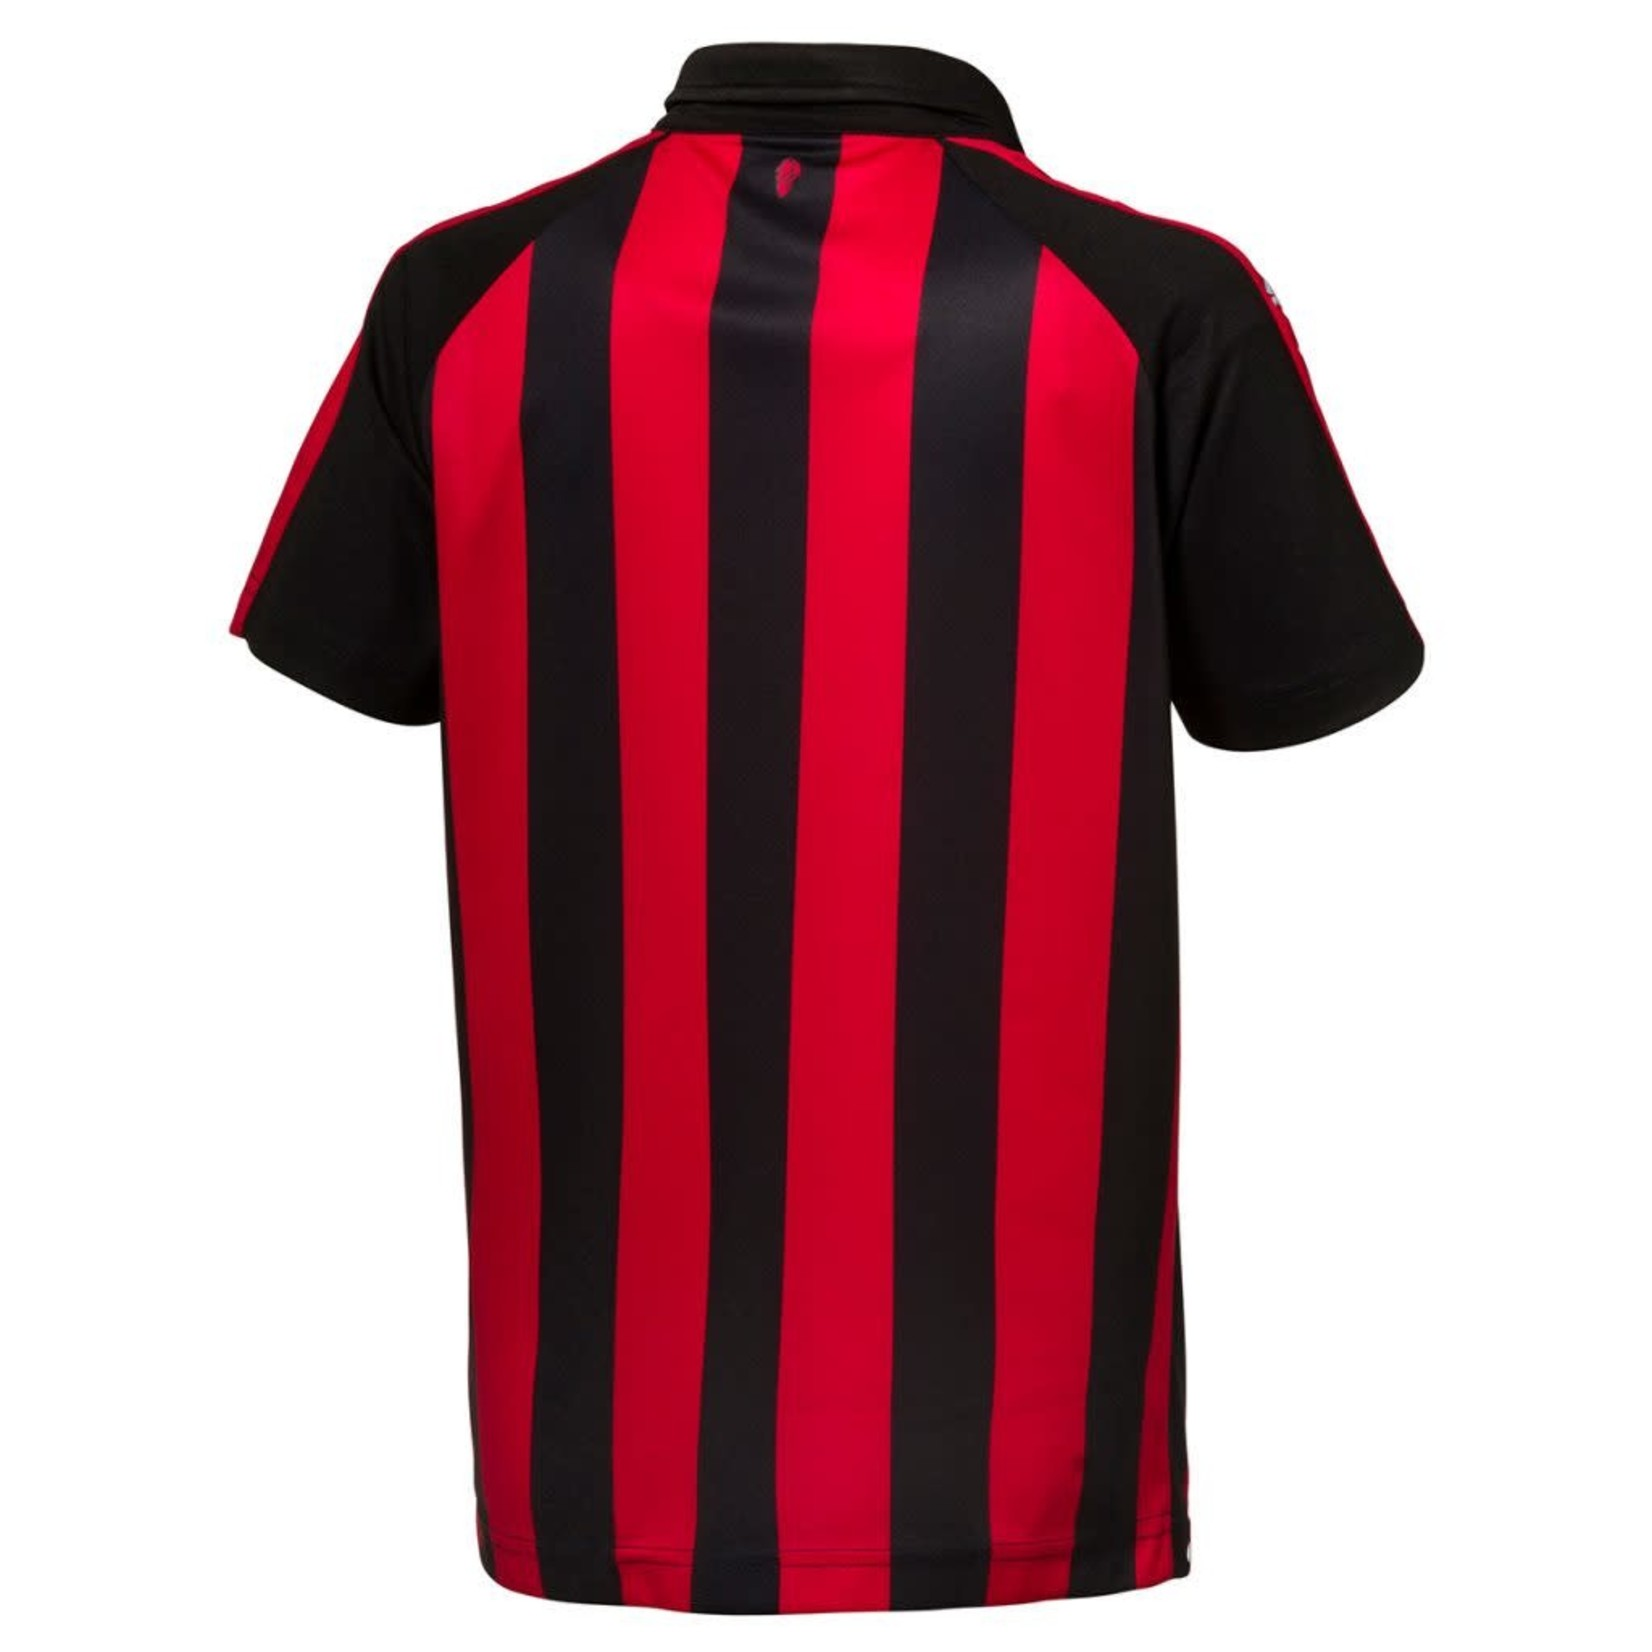 PUMA AC MILAN HOME JERSEY 18/19 YOUTH